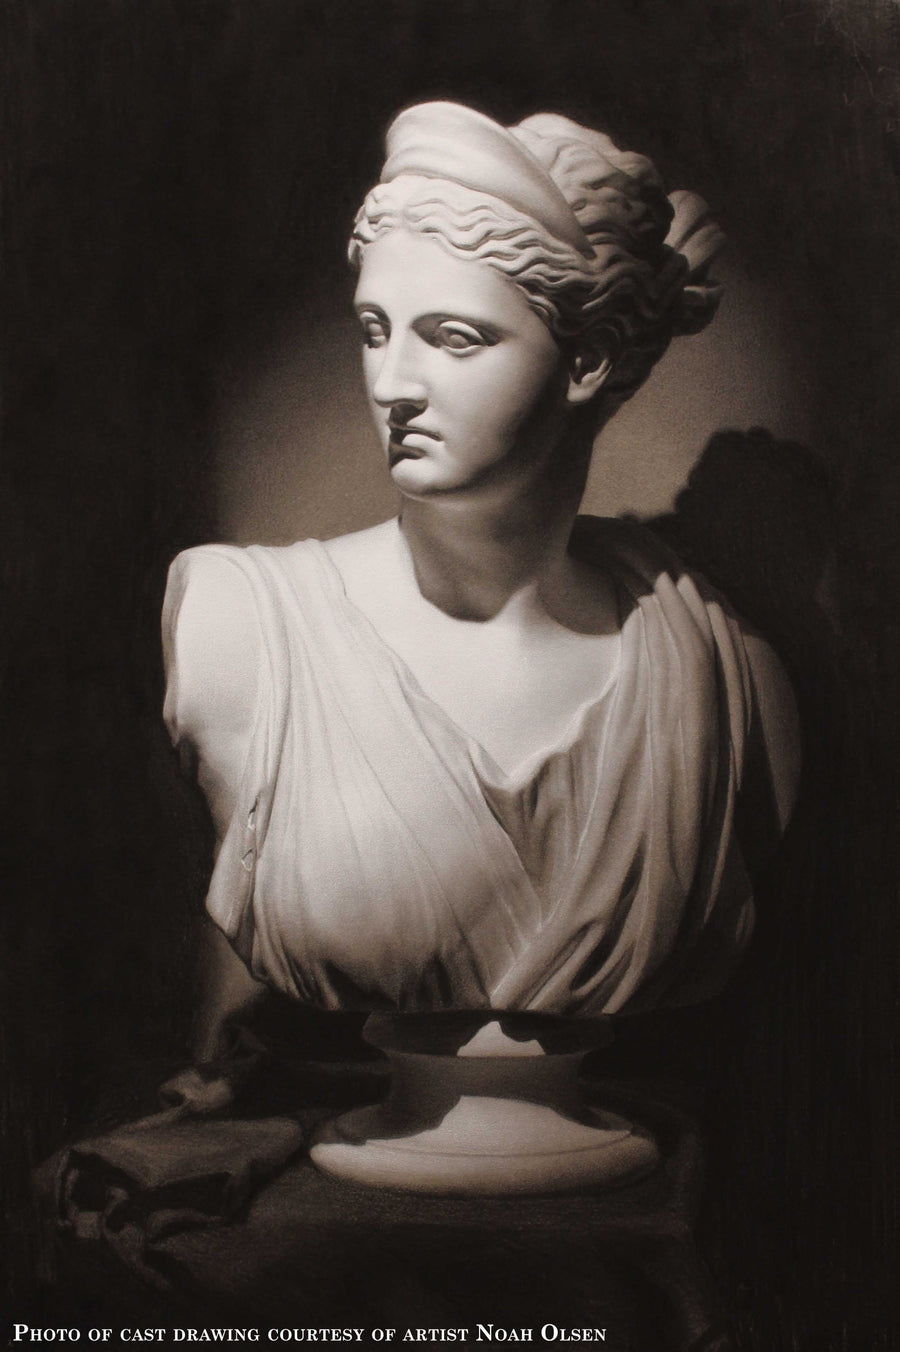 Photo of Cast Drawing of Plaster Caproni Cast of female bust on a table with a cloth over it and rolled into folds beside the statue with a black background